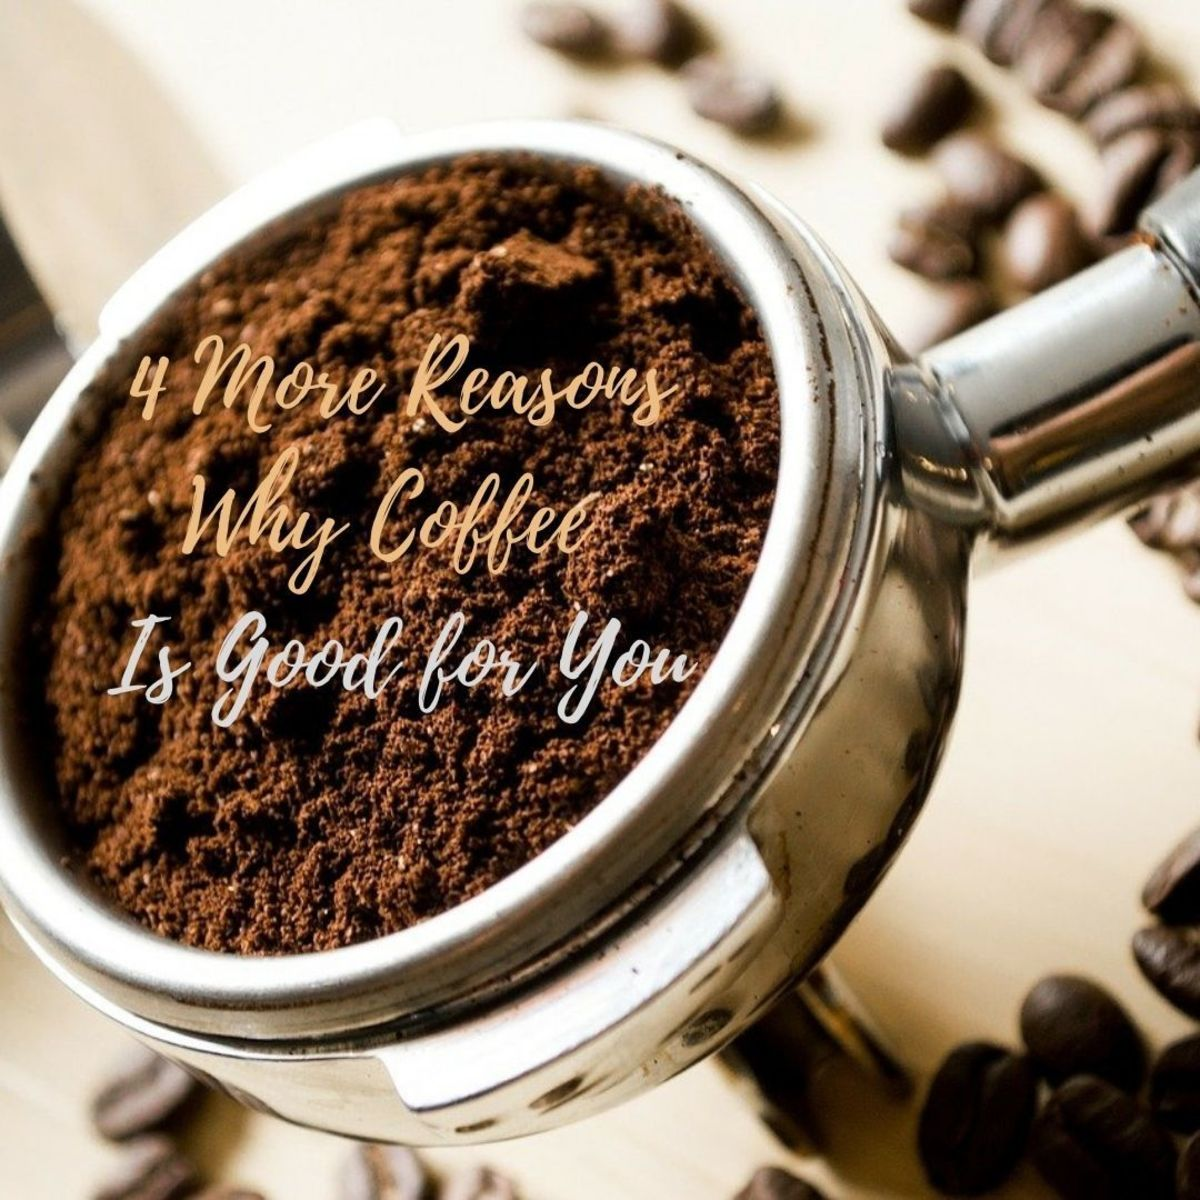 Benefits of Coffee - 4 More Reasons Why Coffee Is Good for You